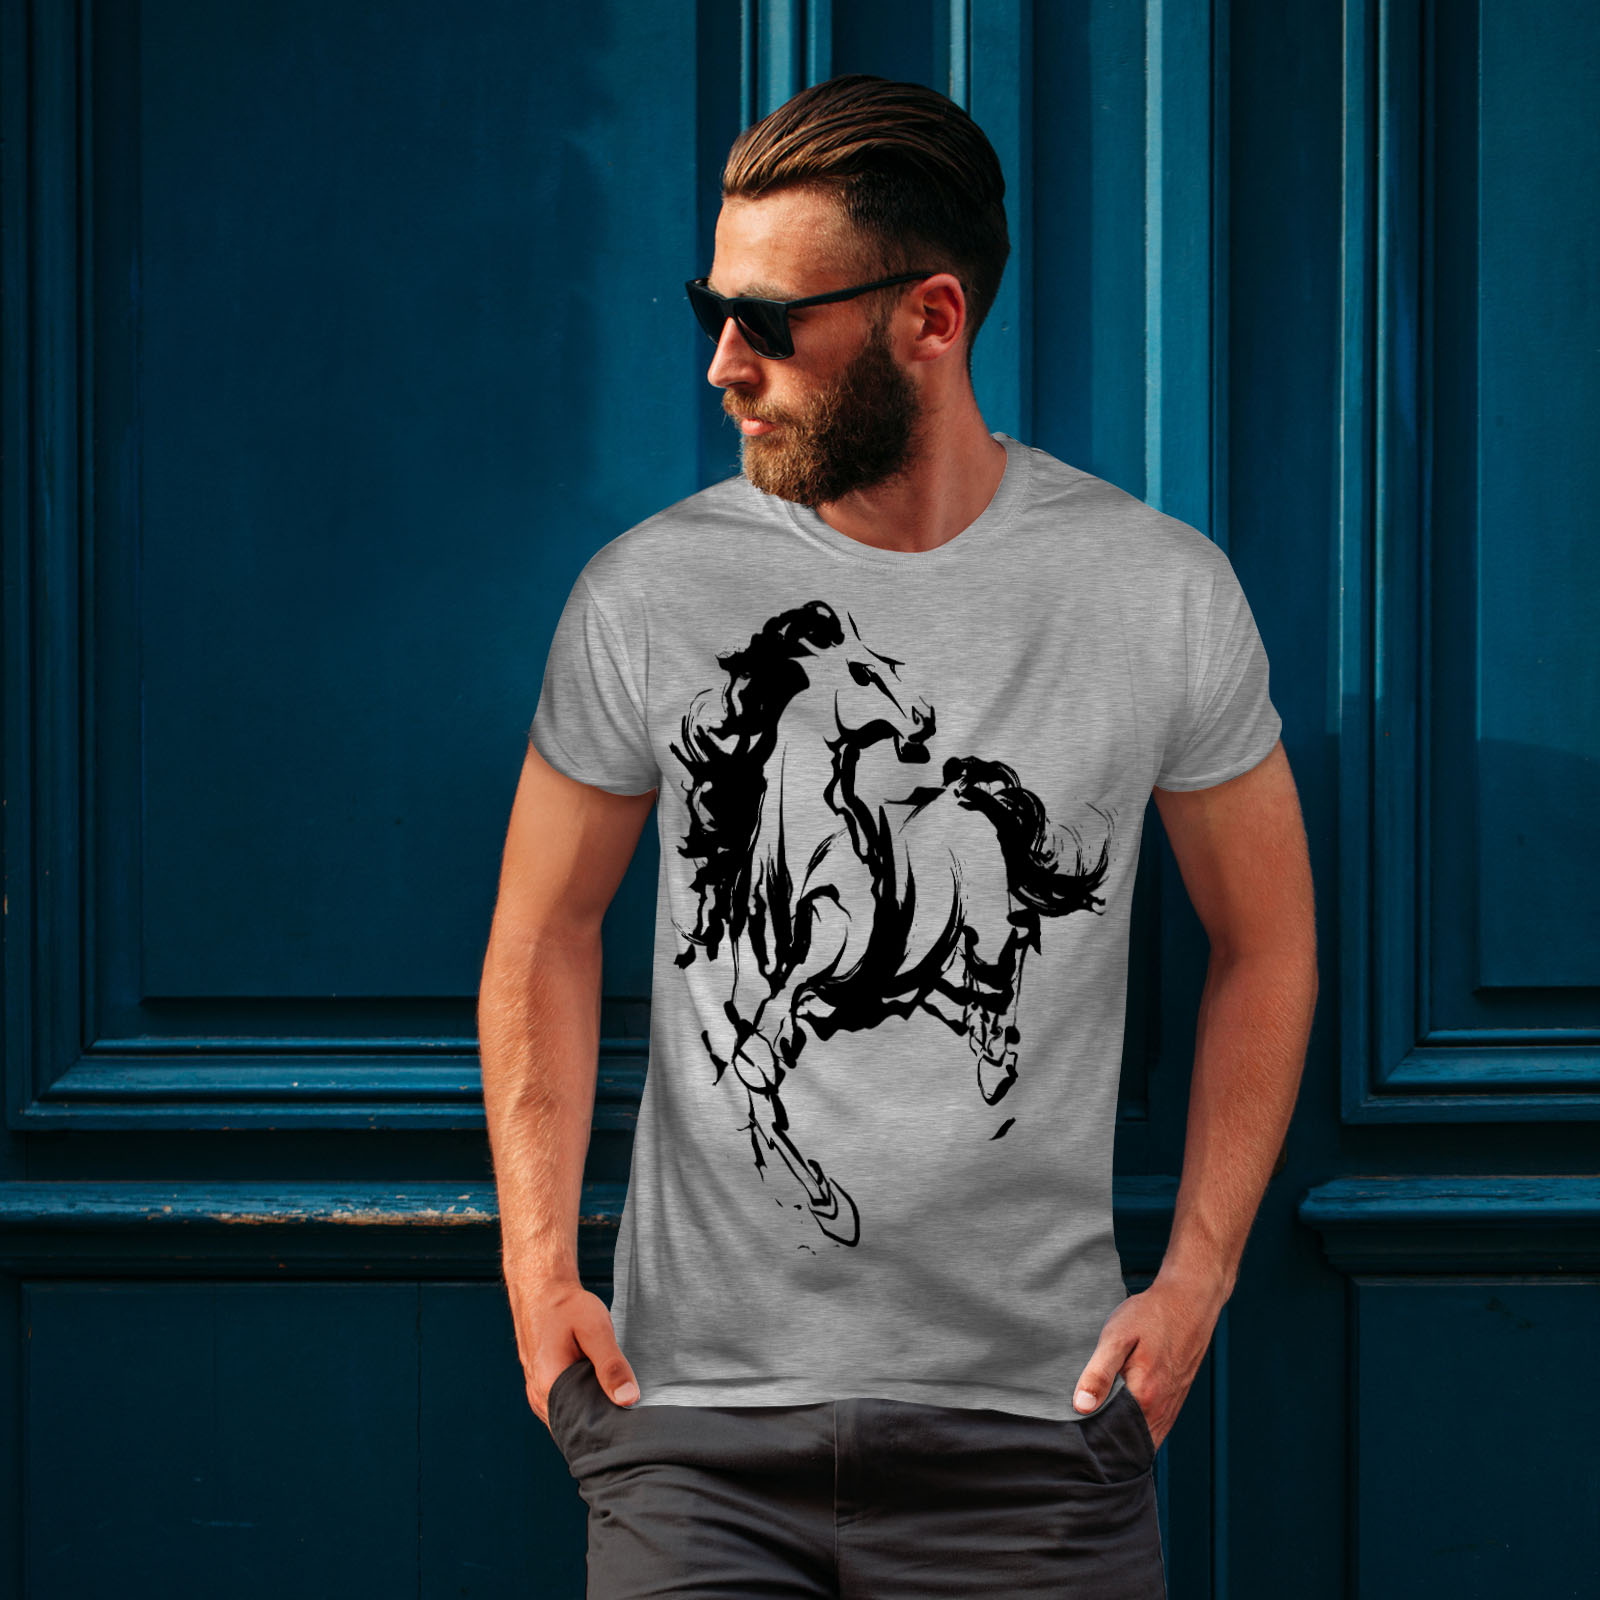 Wellcoda Horse Cool Printed Mens T-shirt Wild Graphic Design Printed Tee